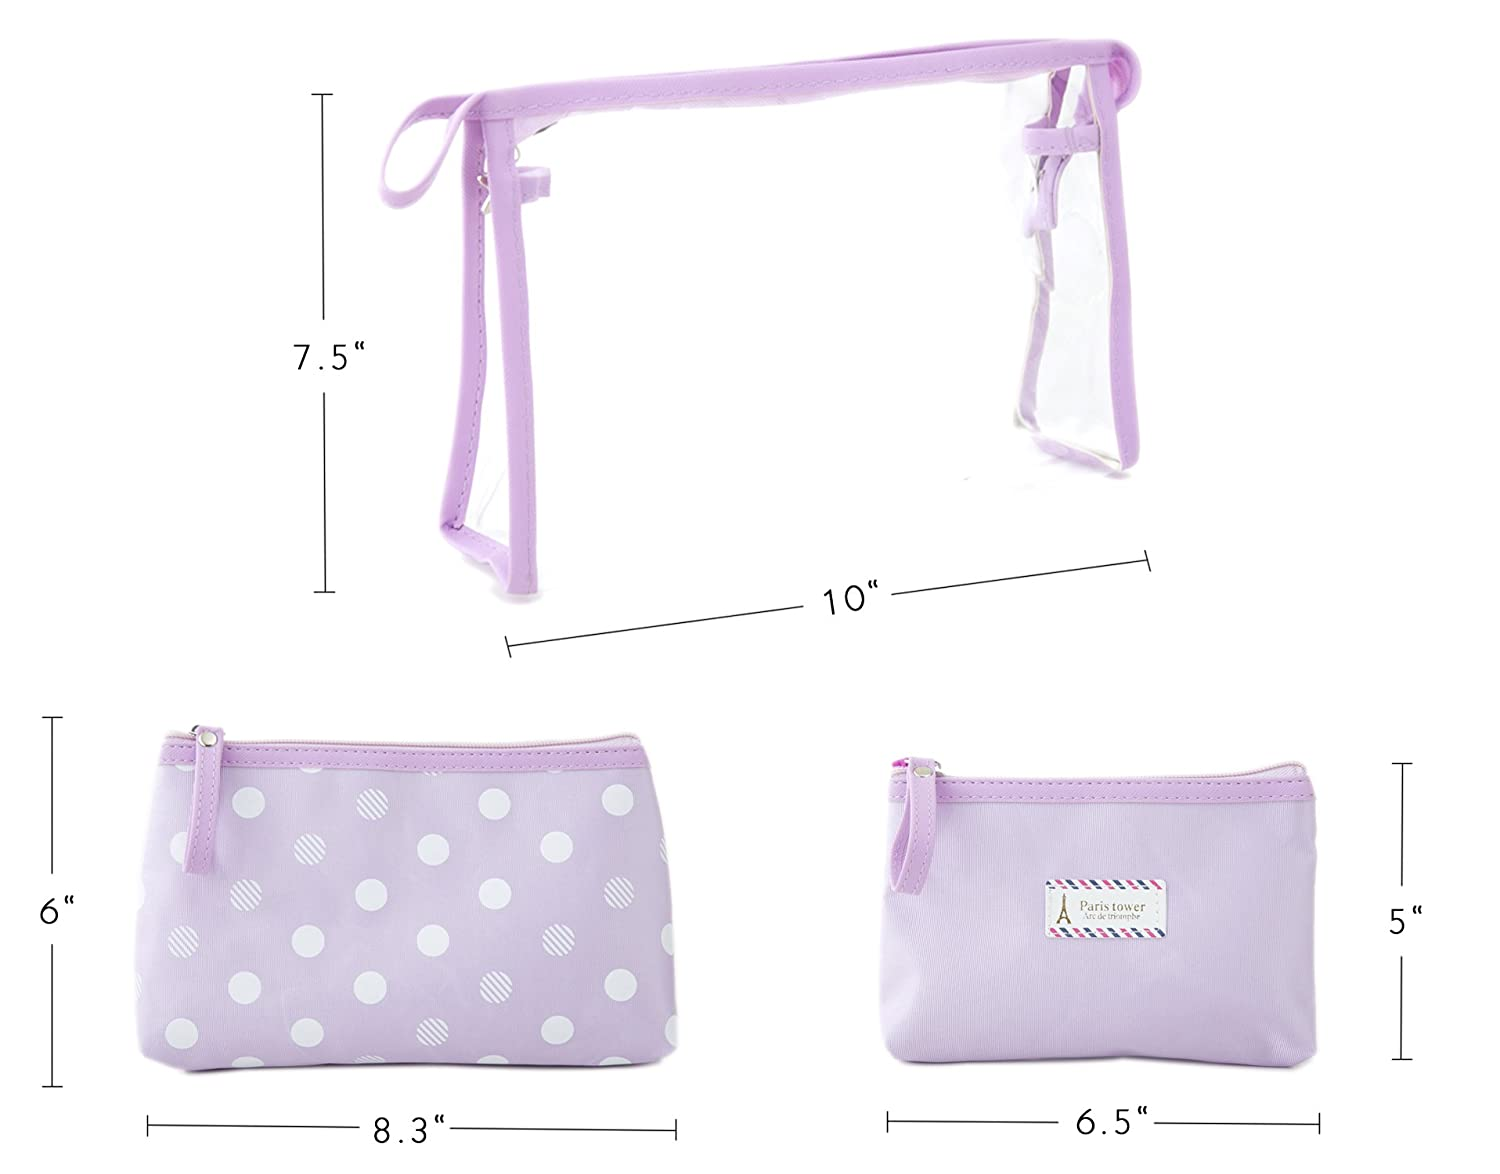 a480a9f88033 Amazon.com   Zhoma 3 Piece Waterproof Cosmetic Bag Set - Makeup Bags And Travel  Case - Purple   Beauty